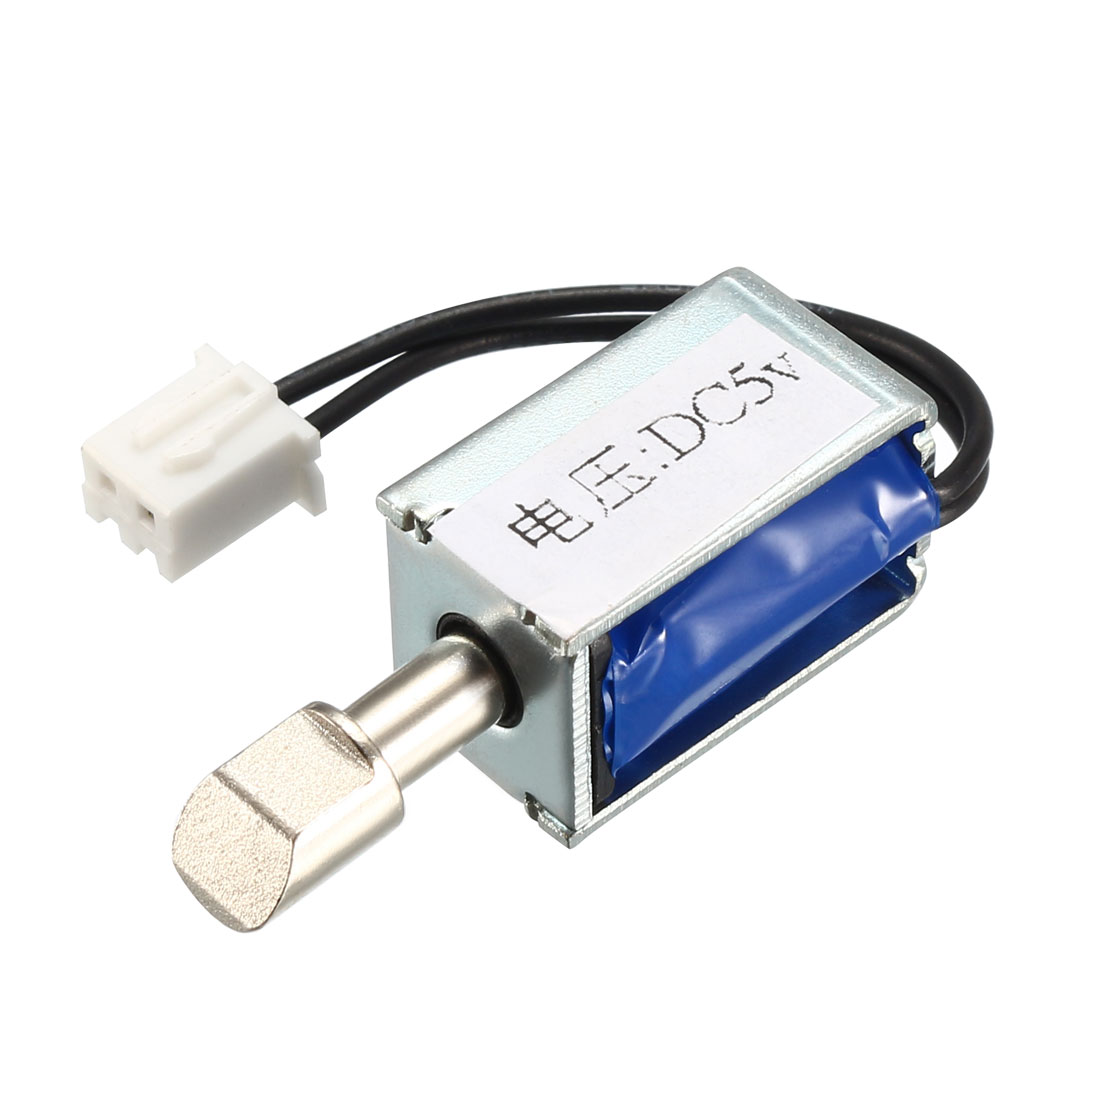 DC5V 0.4A Pull Type Mini Solenoid Electromagnet, Open Frame, Actuator Linear